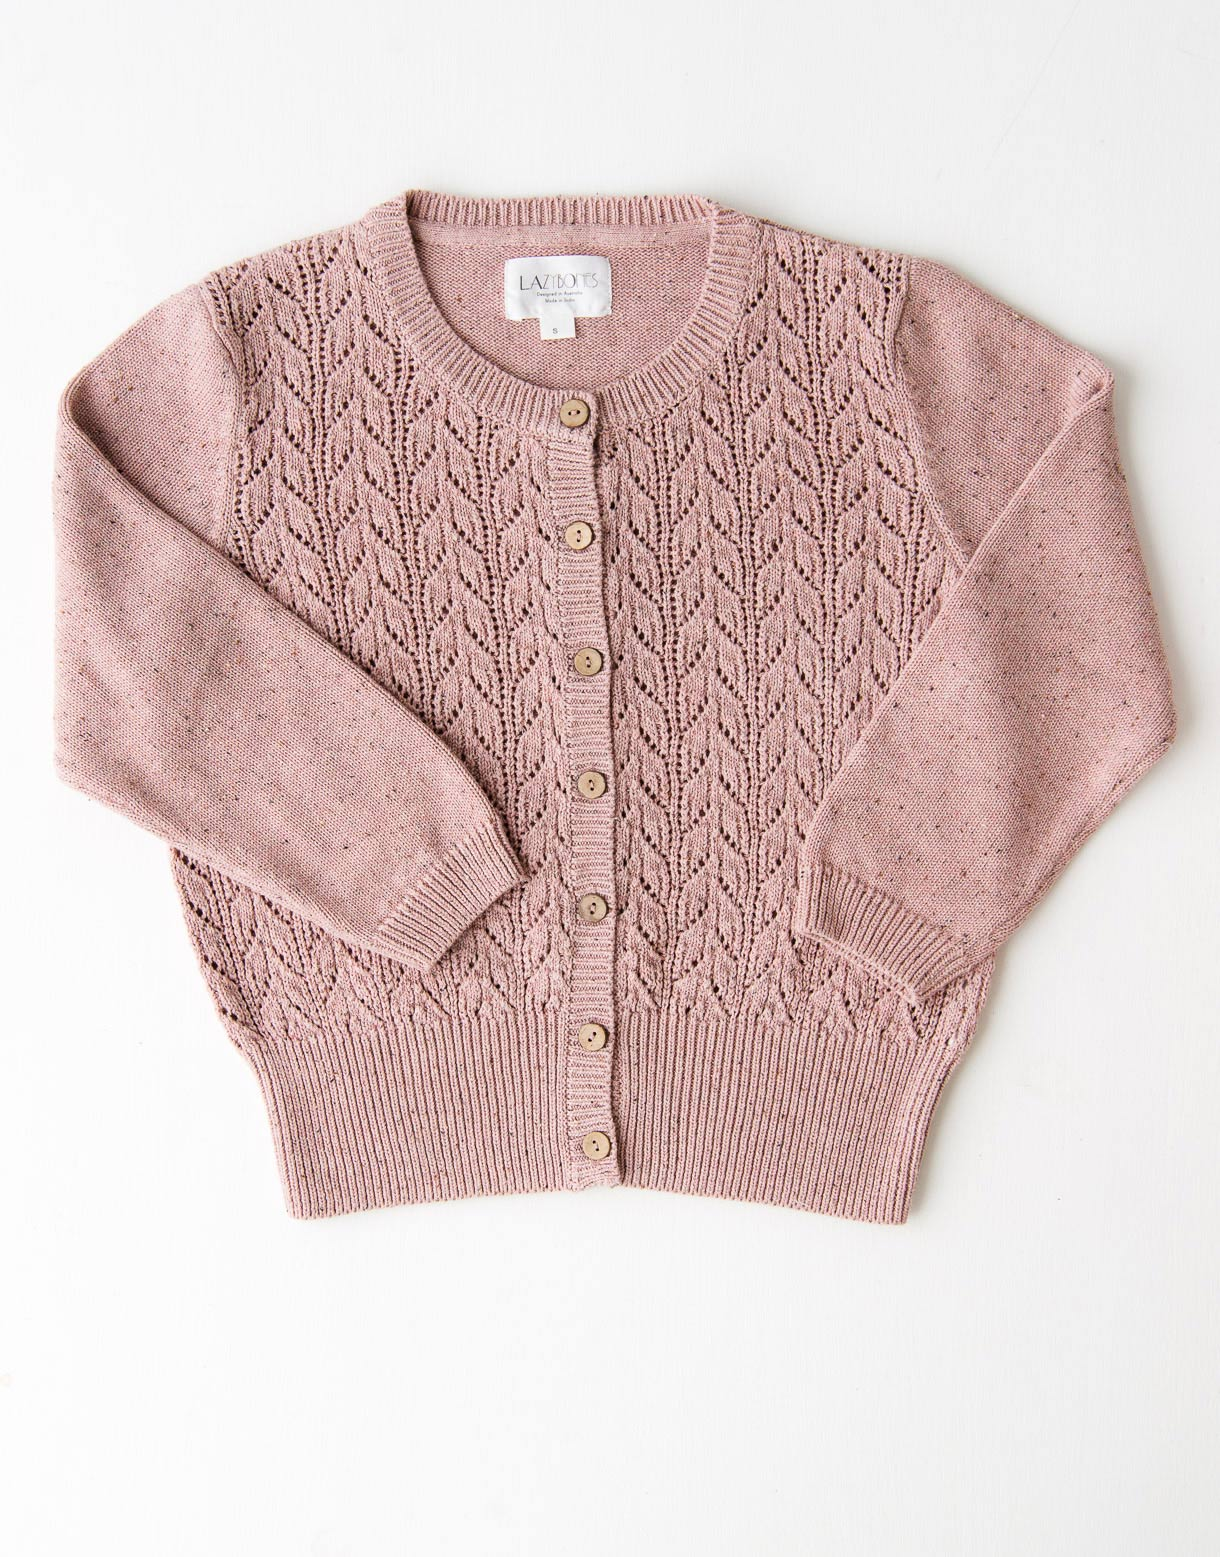 Ava Cardigan in Berry Yoghurt *organic cotton